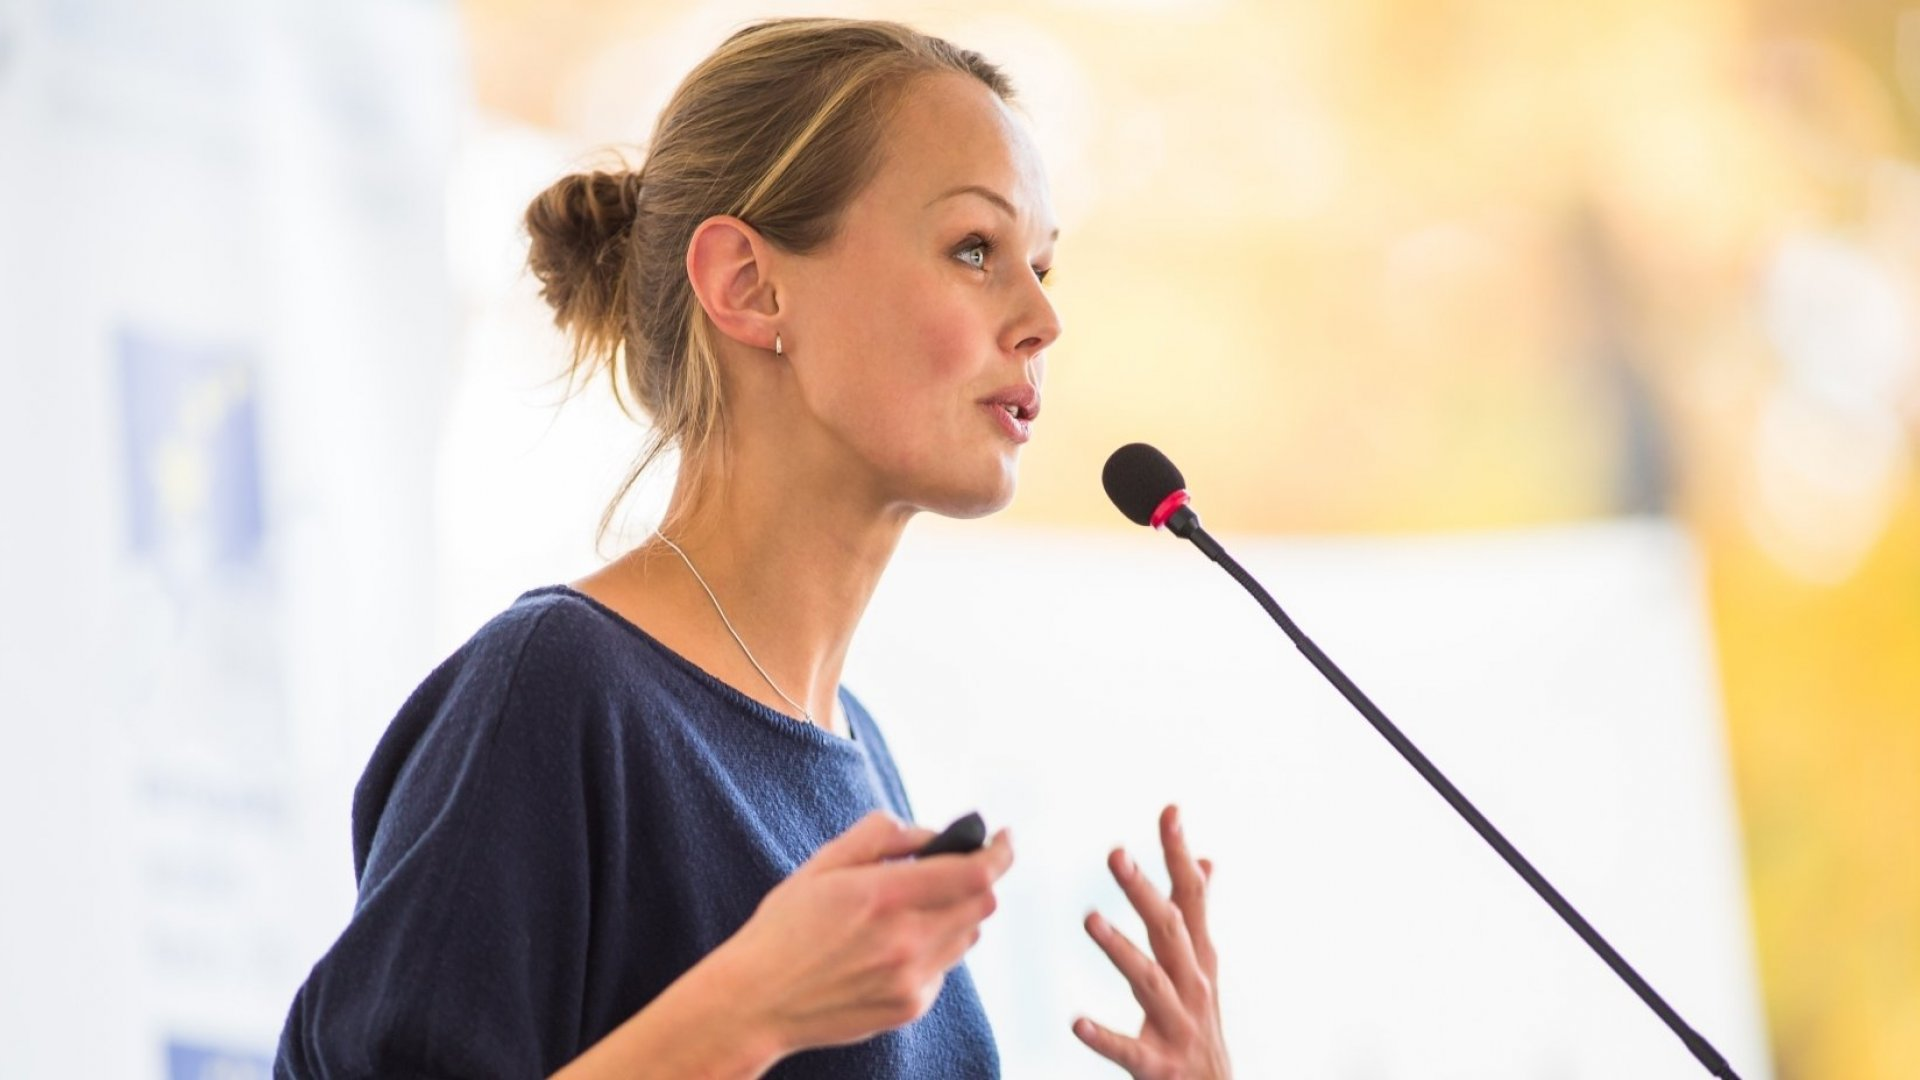 5 Tips on How to Become an Incredible Public Speaker